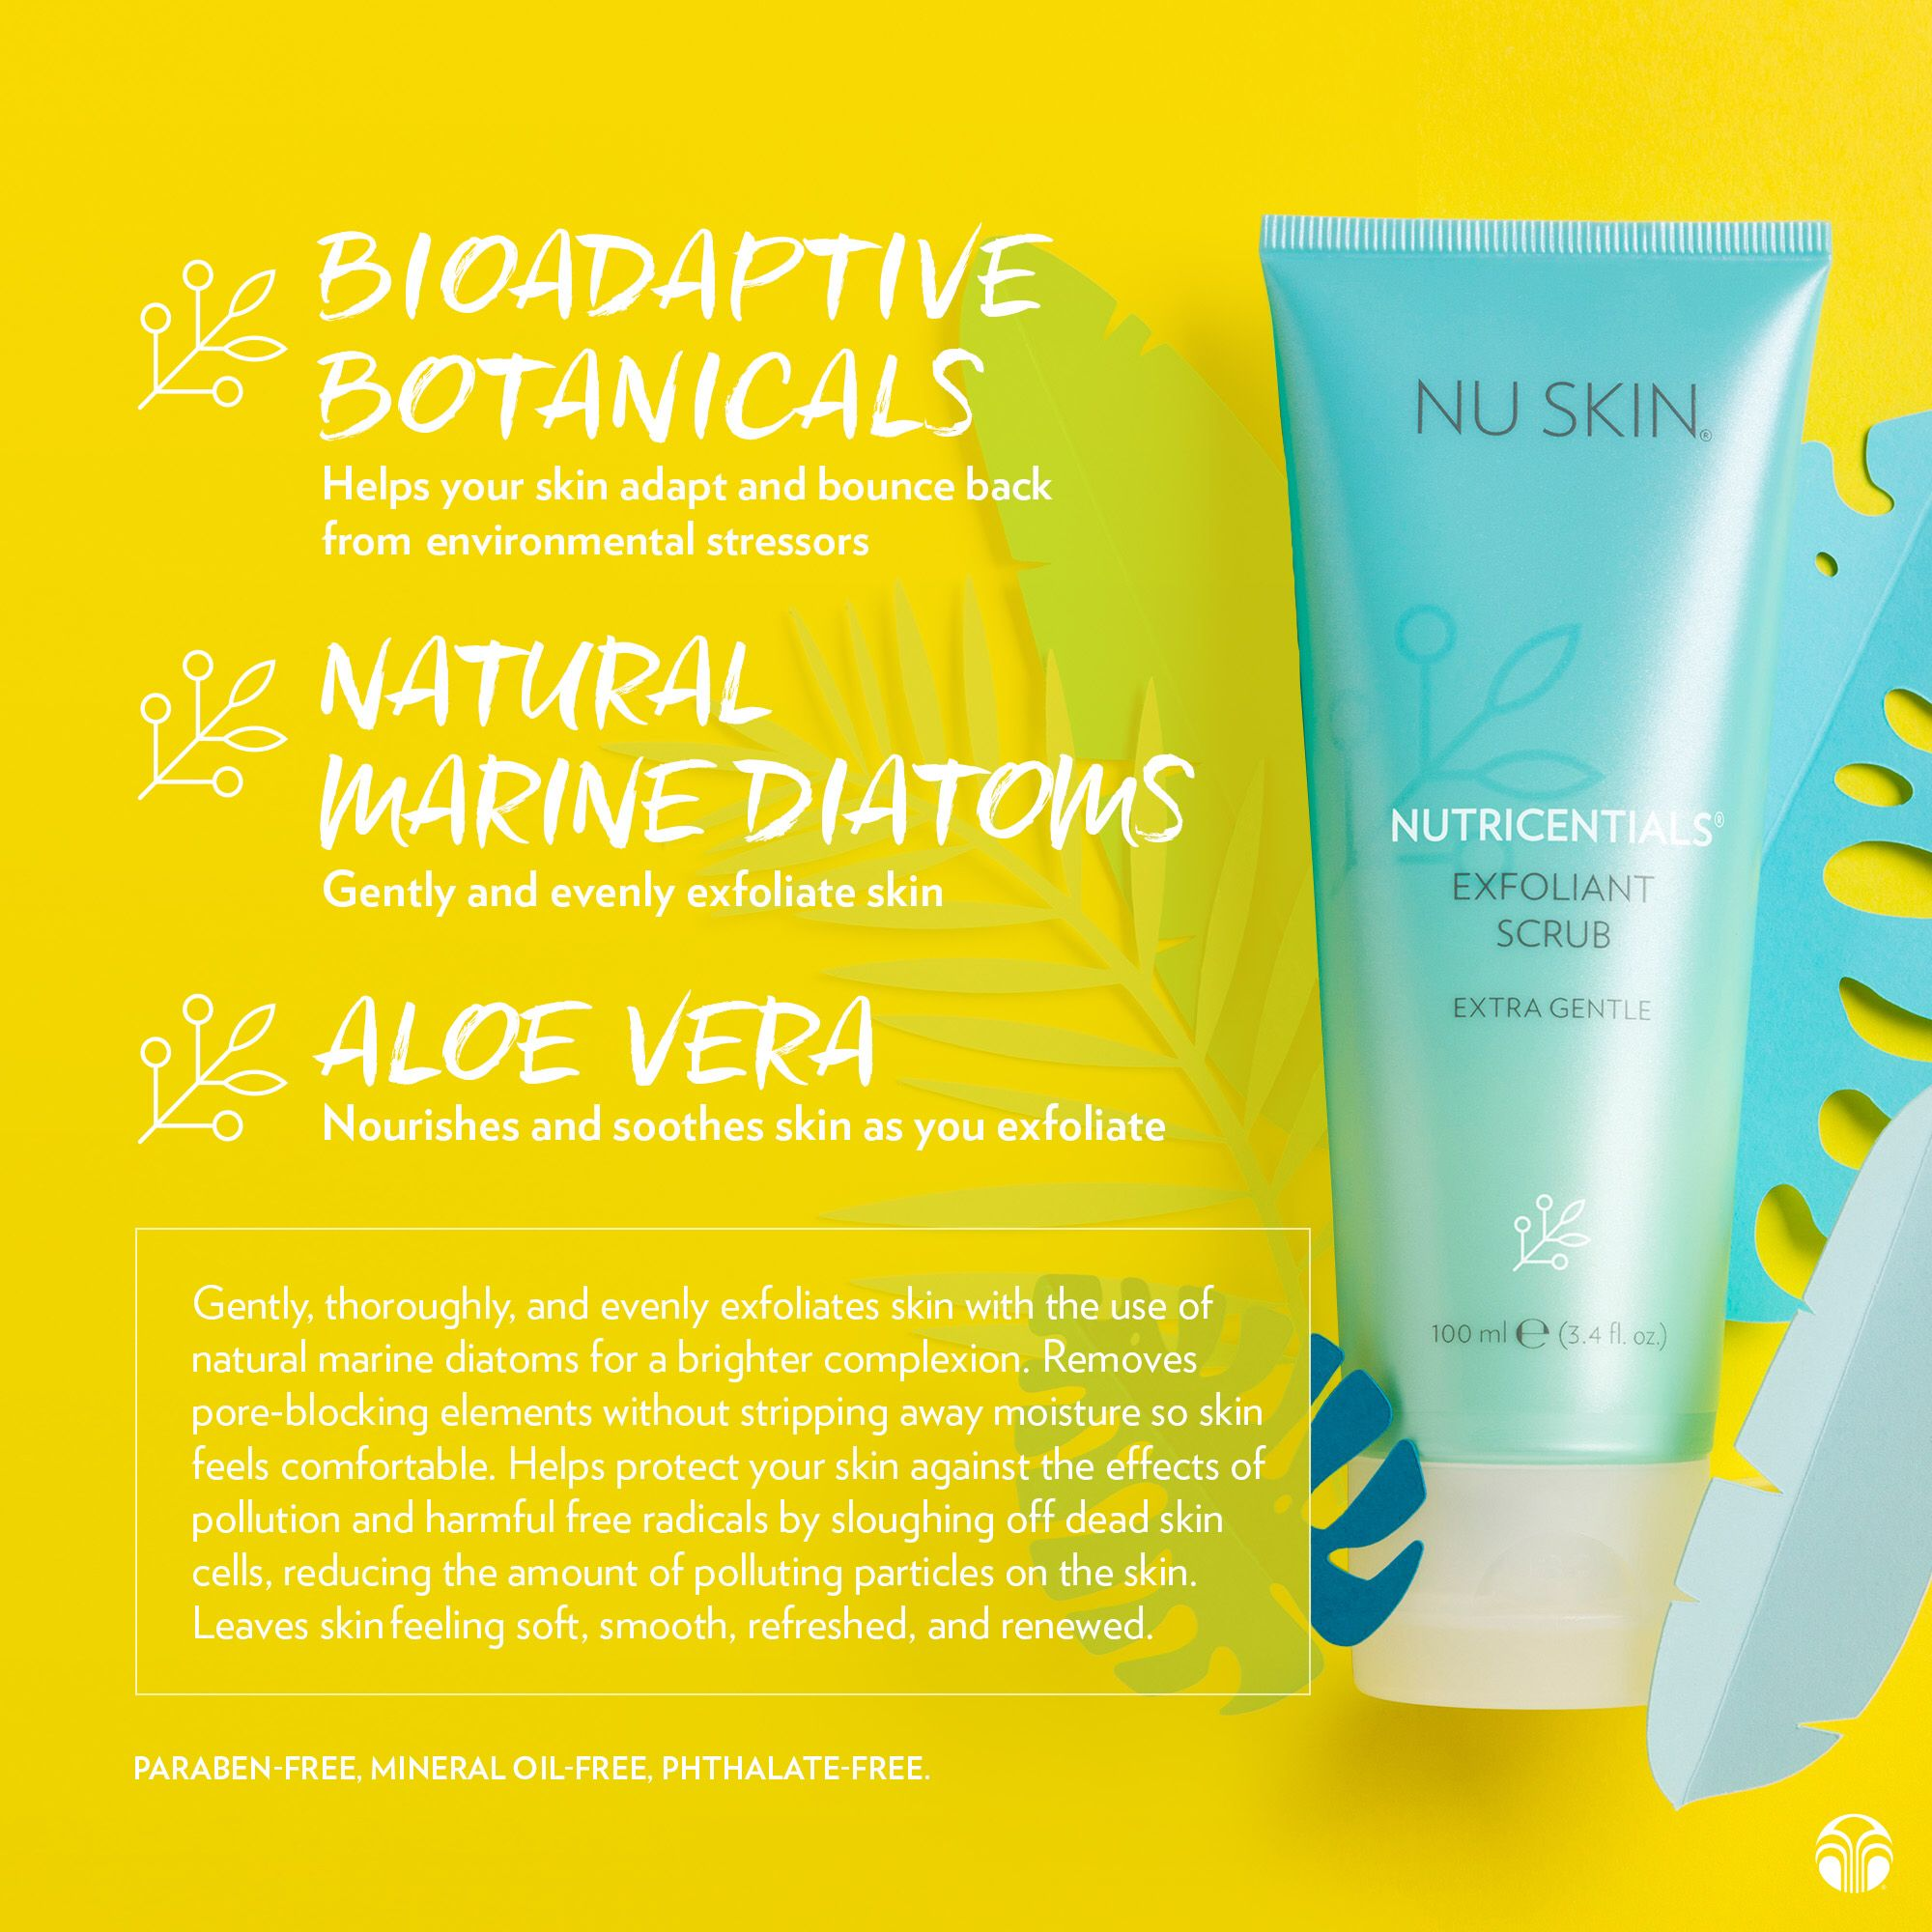 Nutricentials Complete Regimen For Normal To Dry Skin In 2020